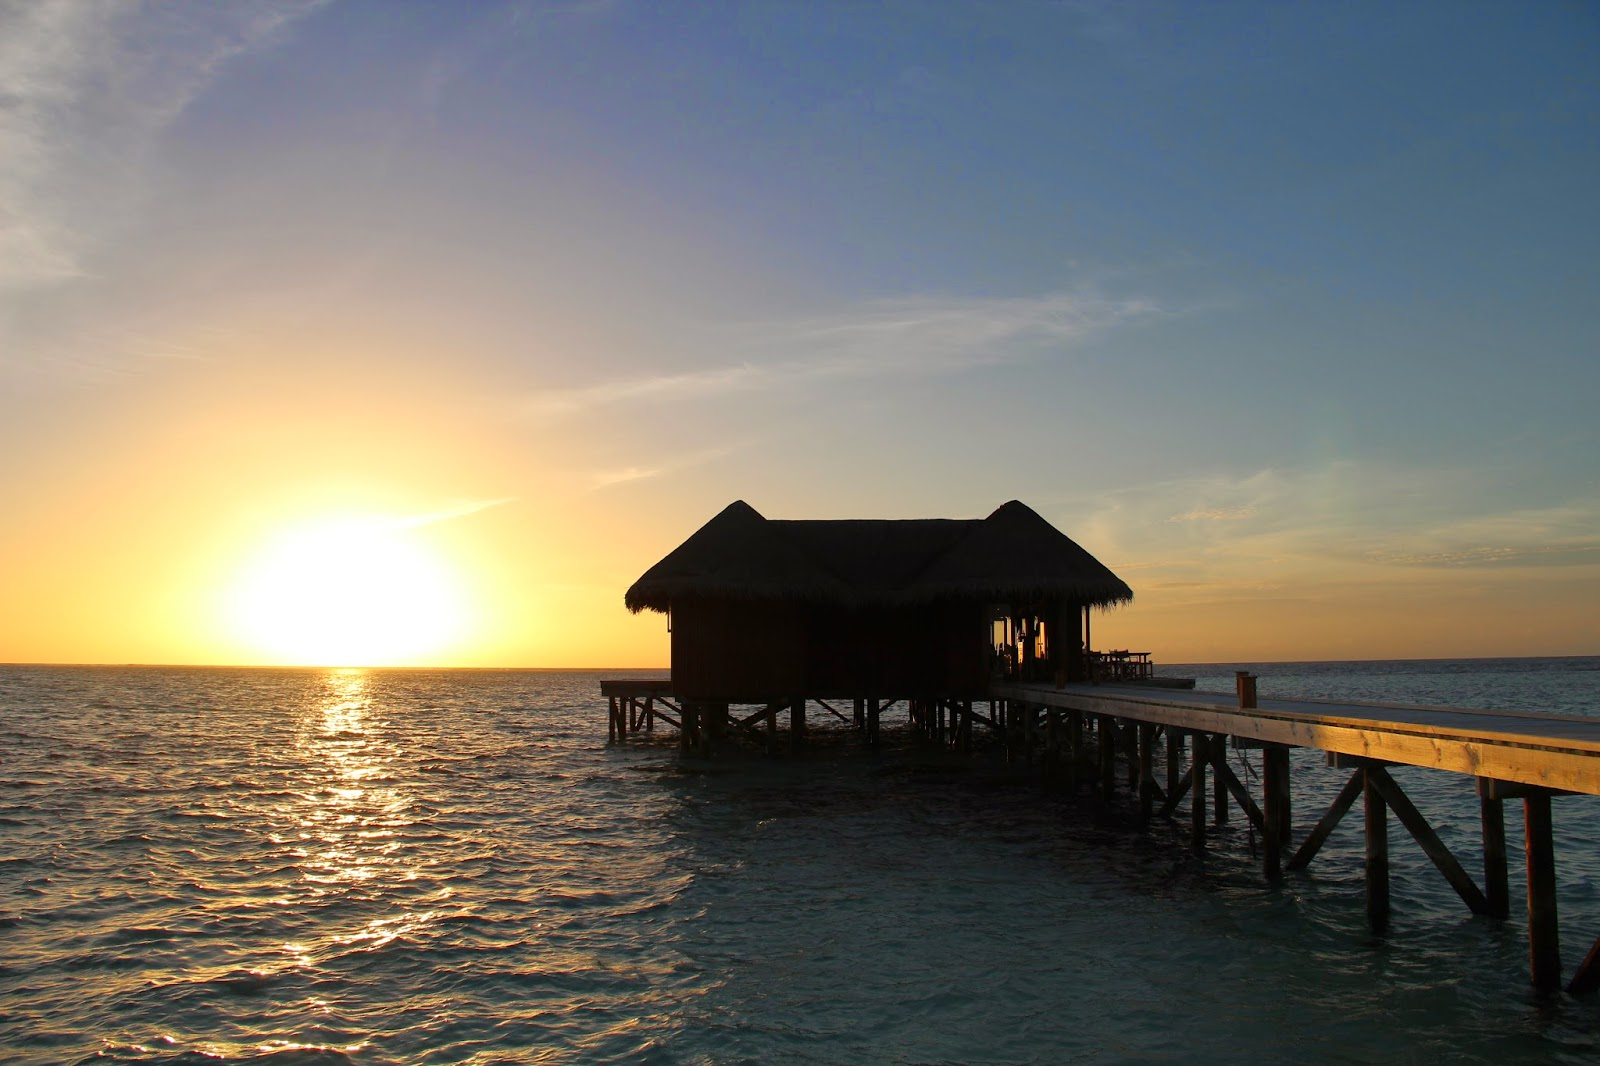 Sunset at Mirihi Maldives